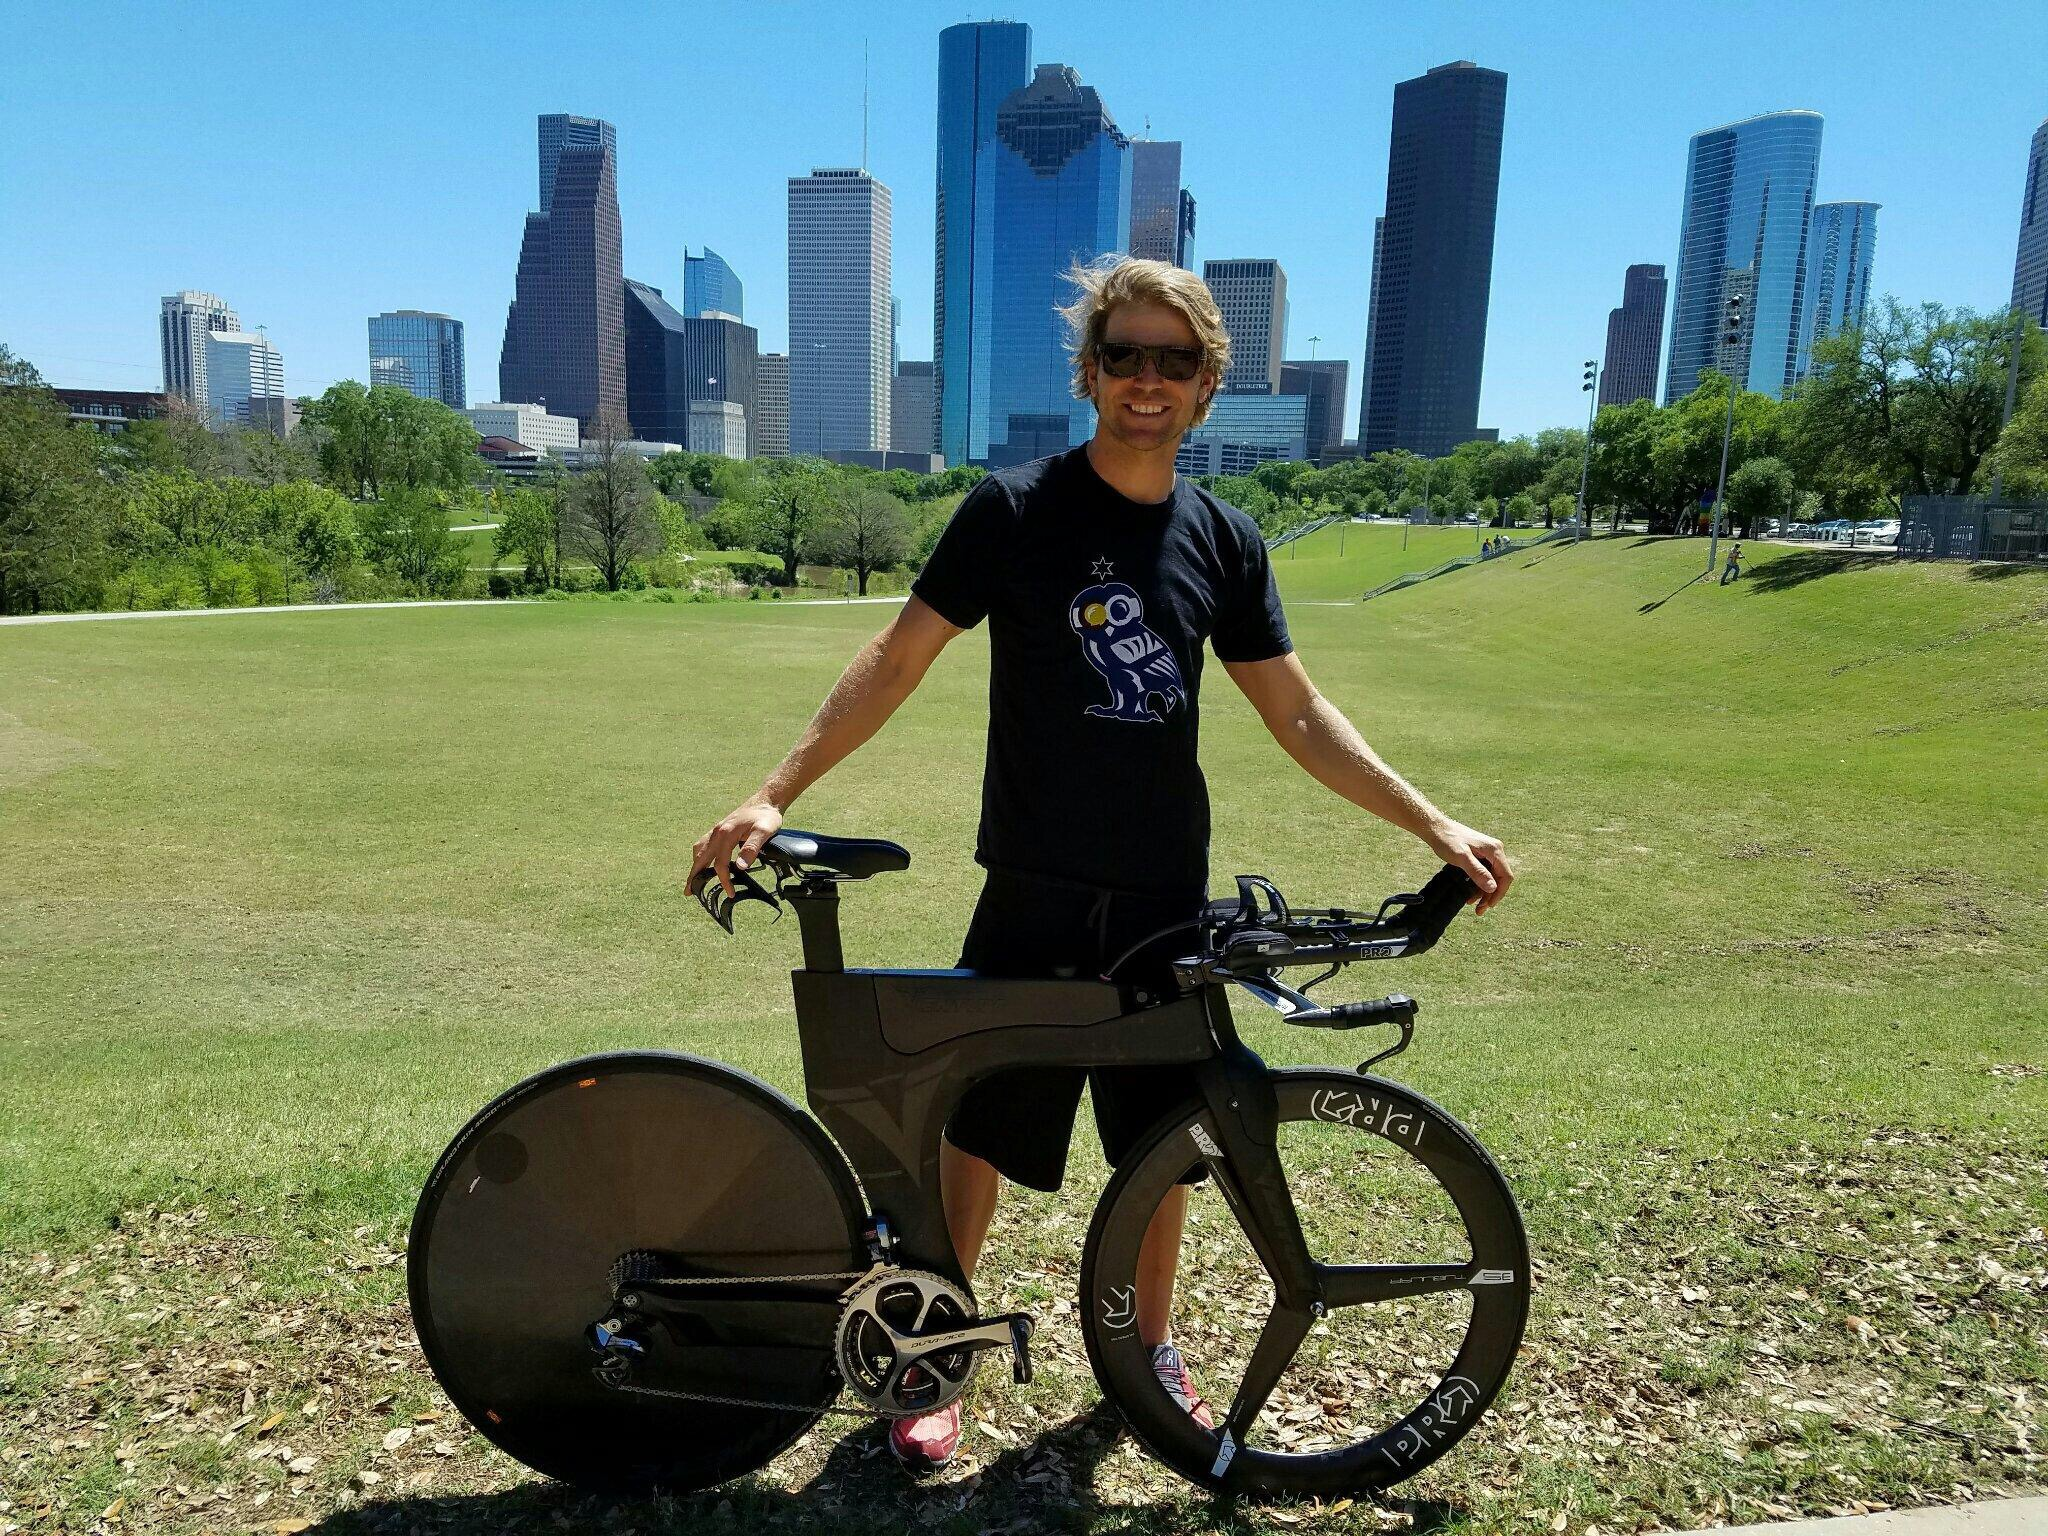 Shot some photos in hometown of Houston prior to racing Galveston.